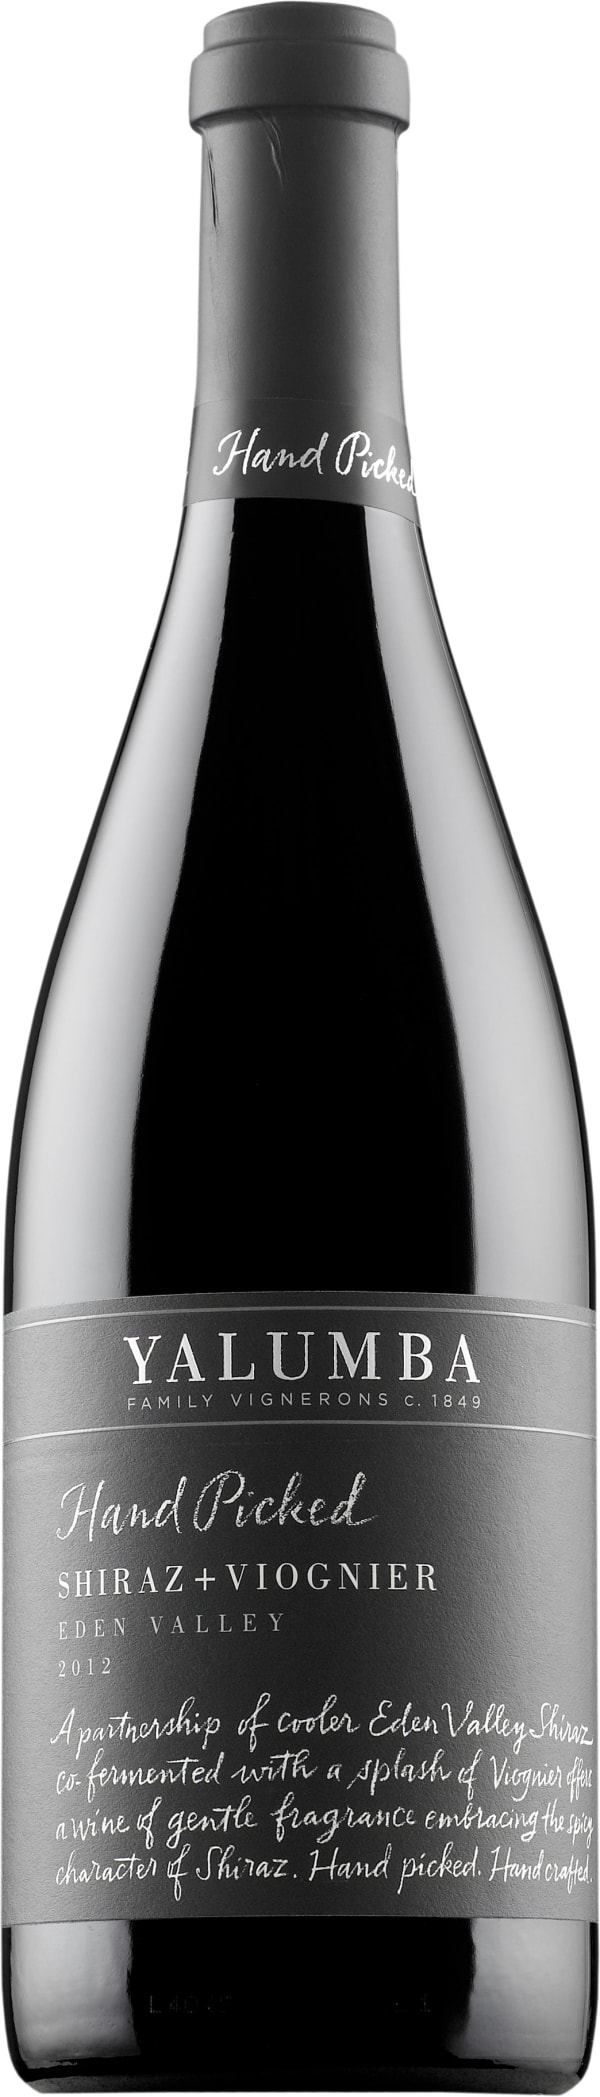 Yalumba Hand Picked Shiraz Viognier 2015